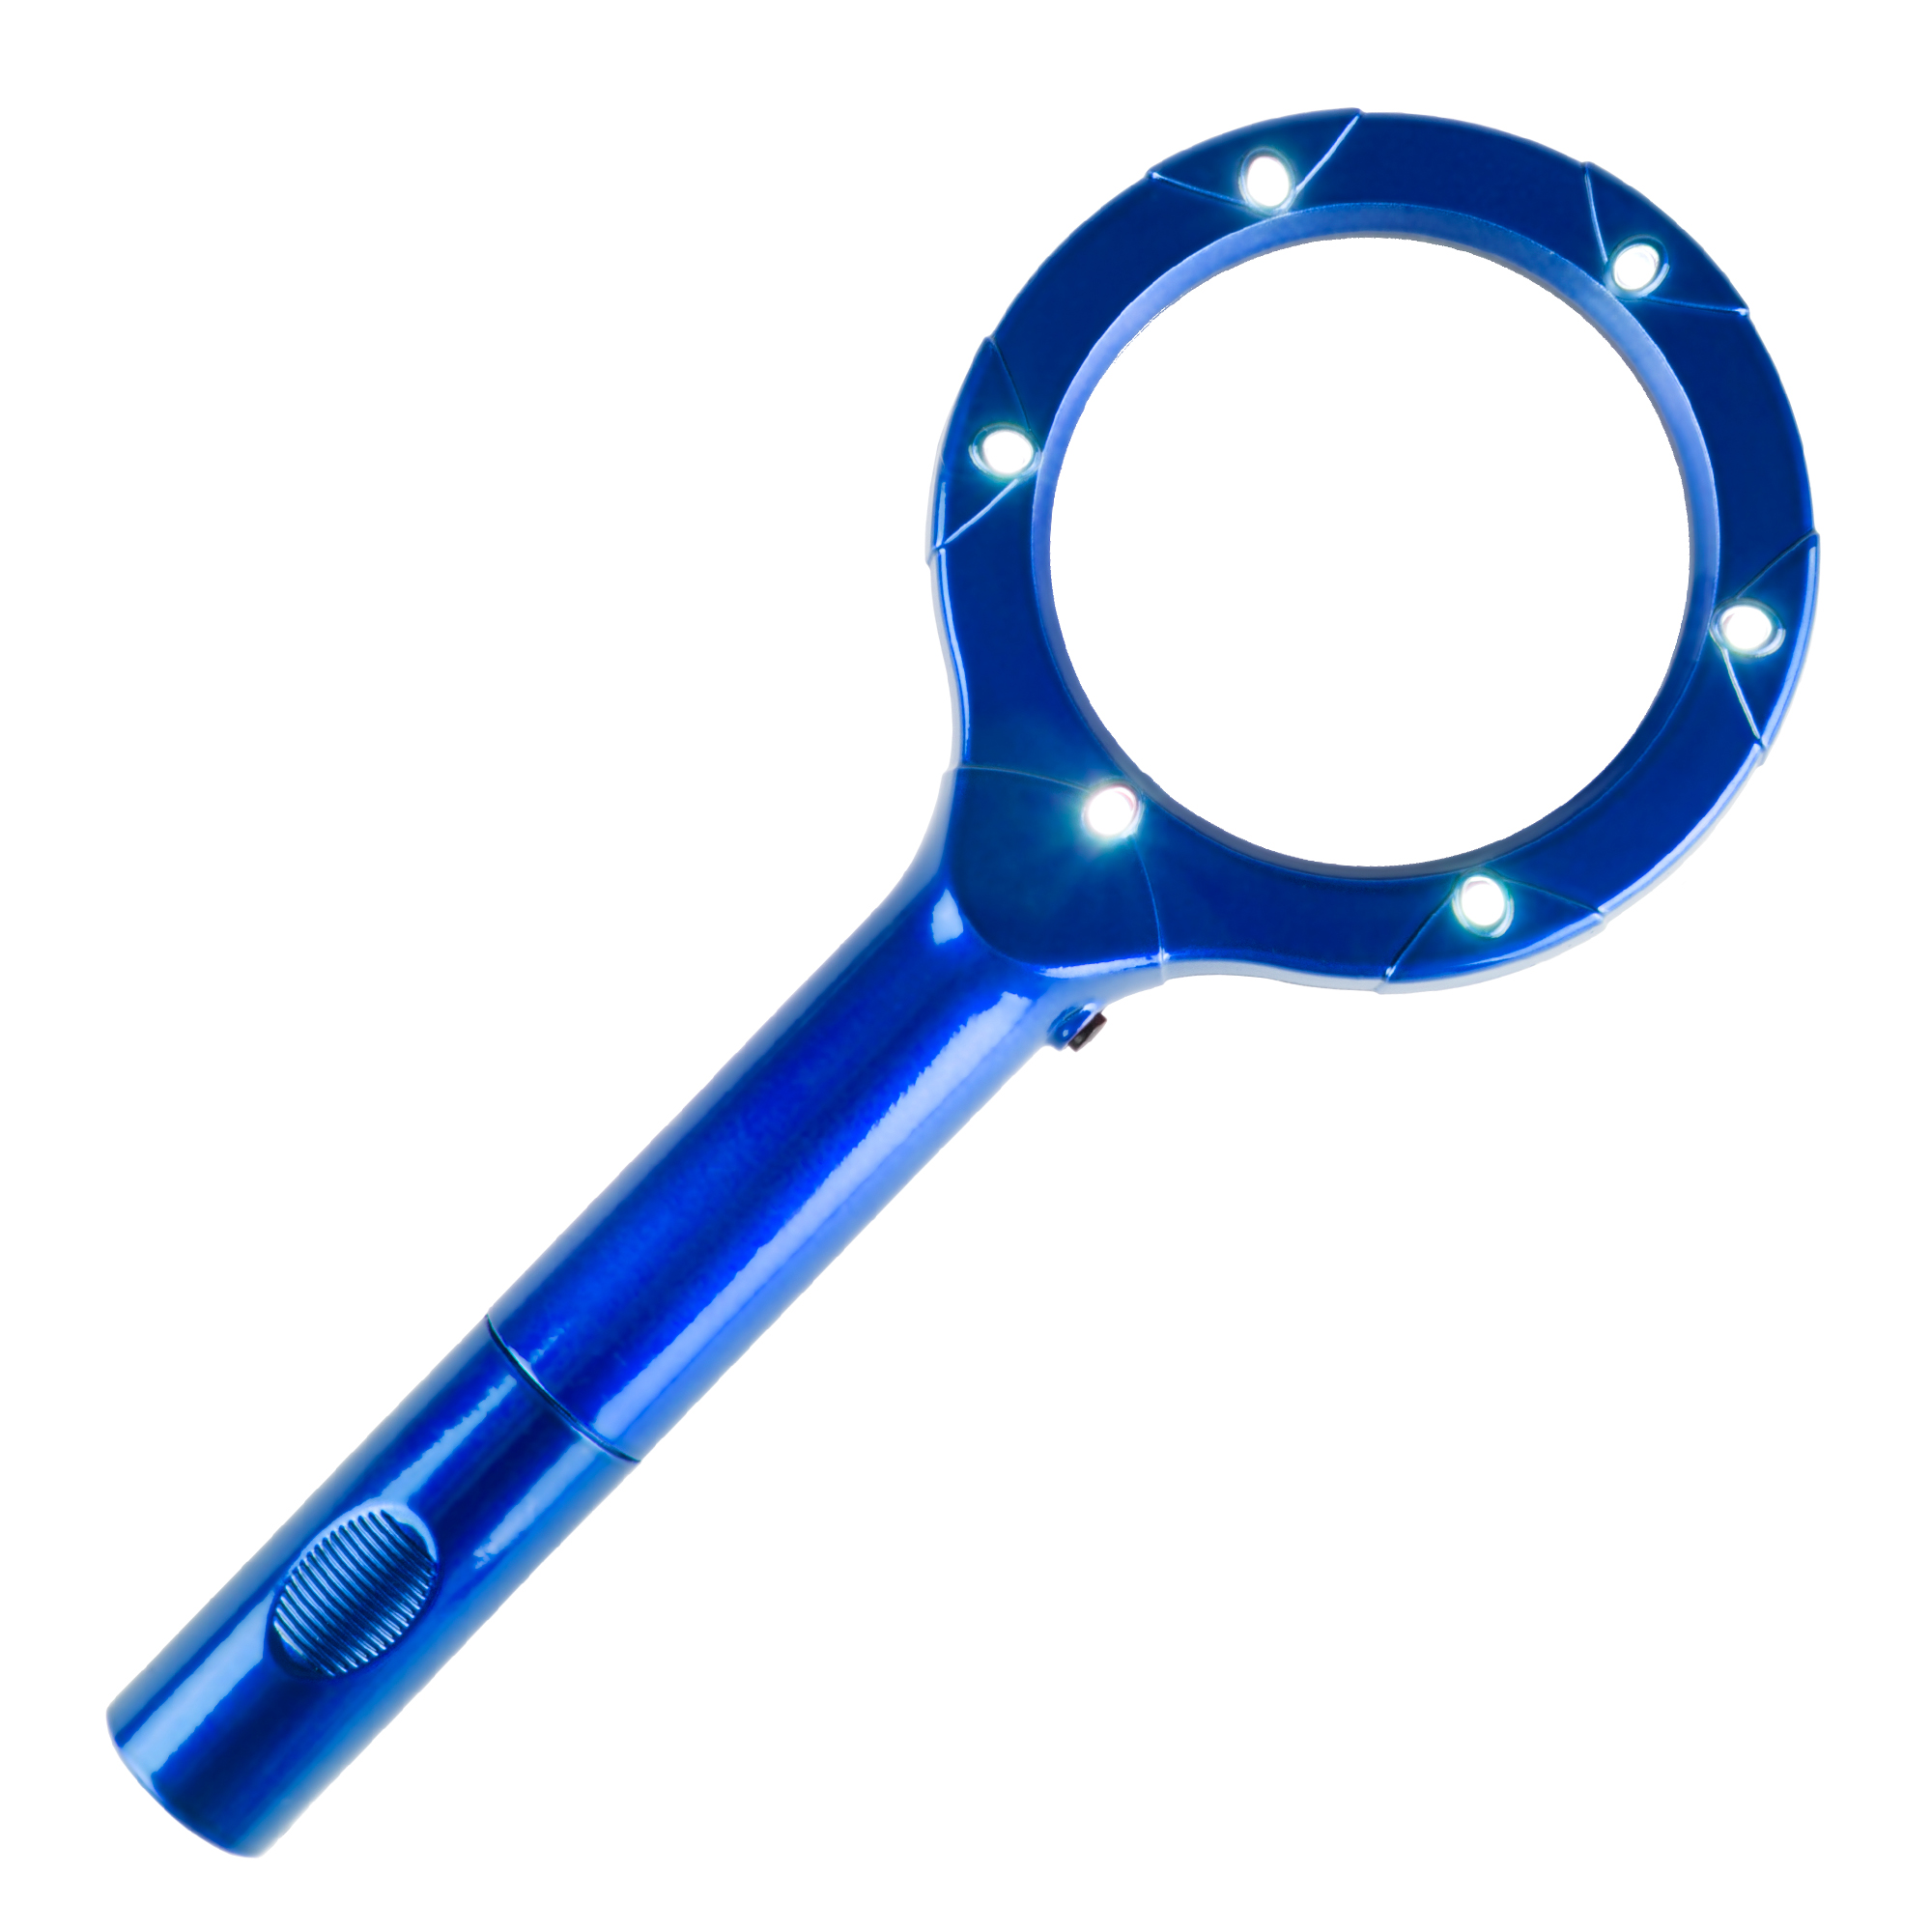 Magnifying Glass with LED Light, Lightweight Handheld Lighted 4x Magnifier by Stalwart